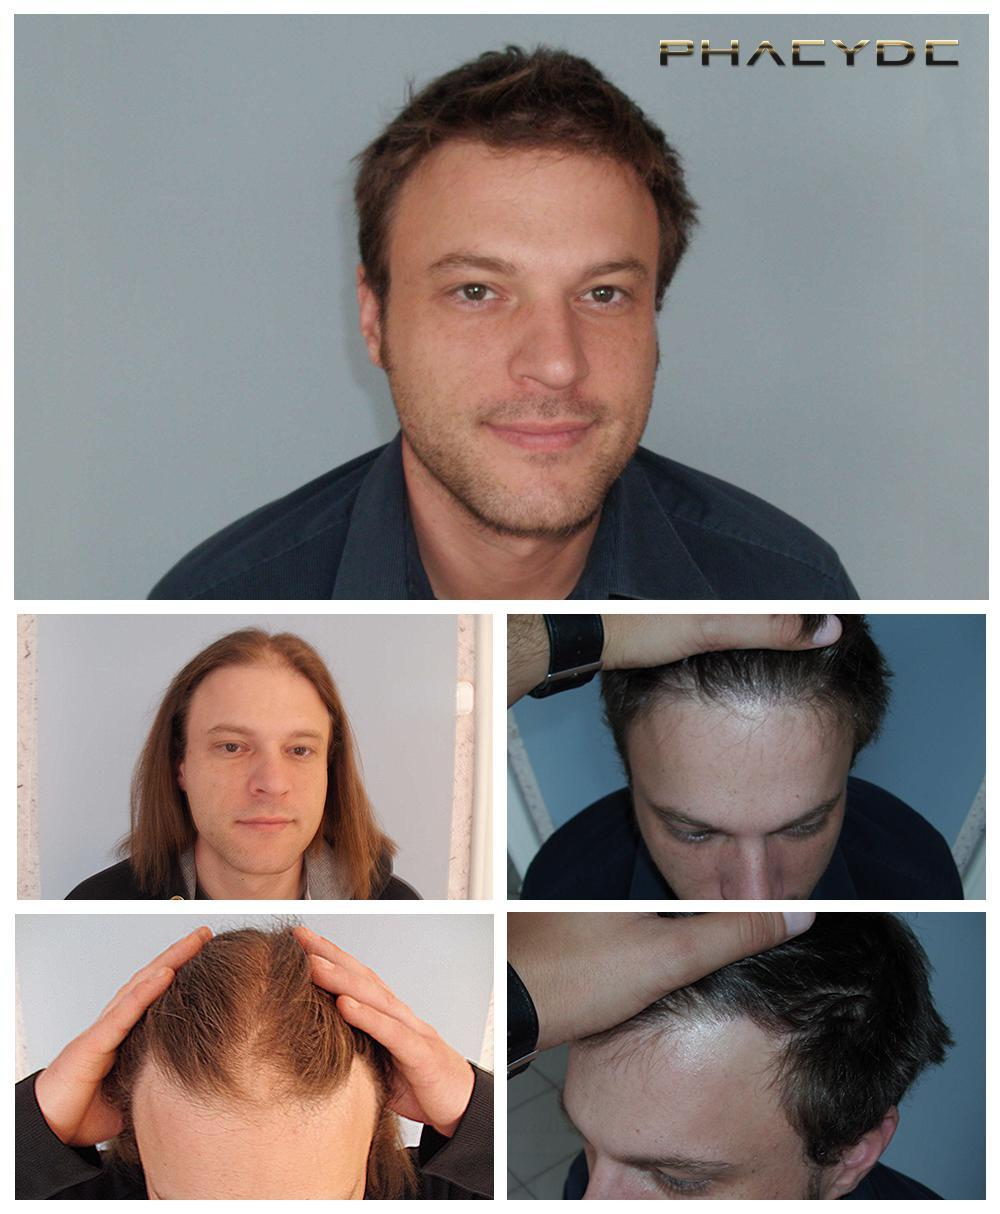 Hair transplant fue results before after photos gergely szalai - PHAEYDE Clinic